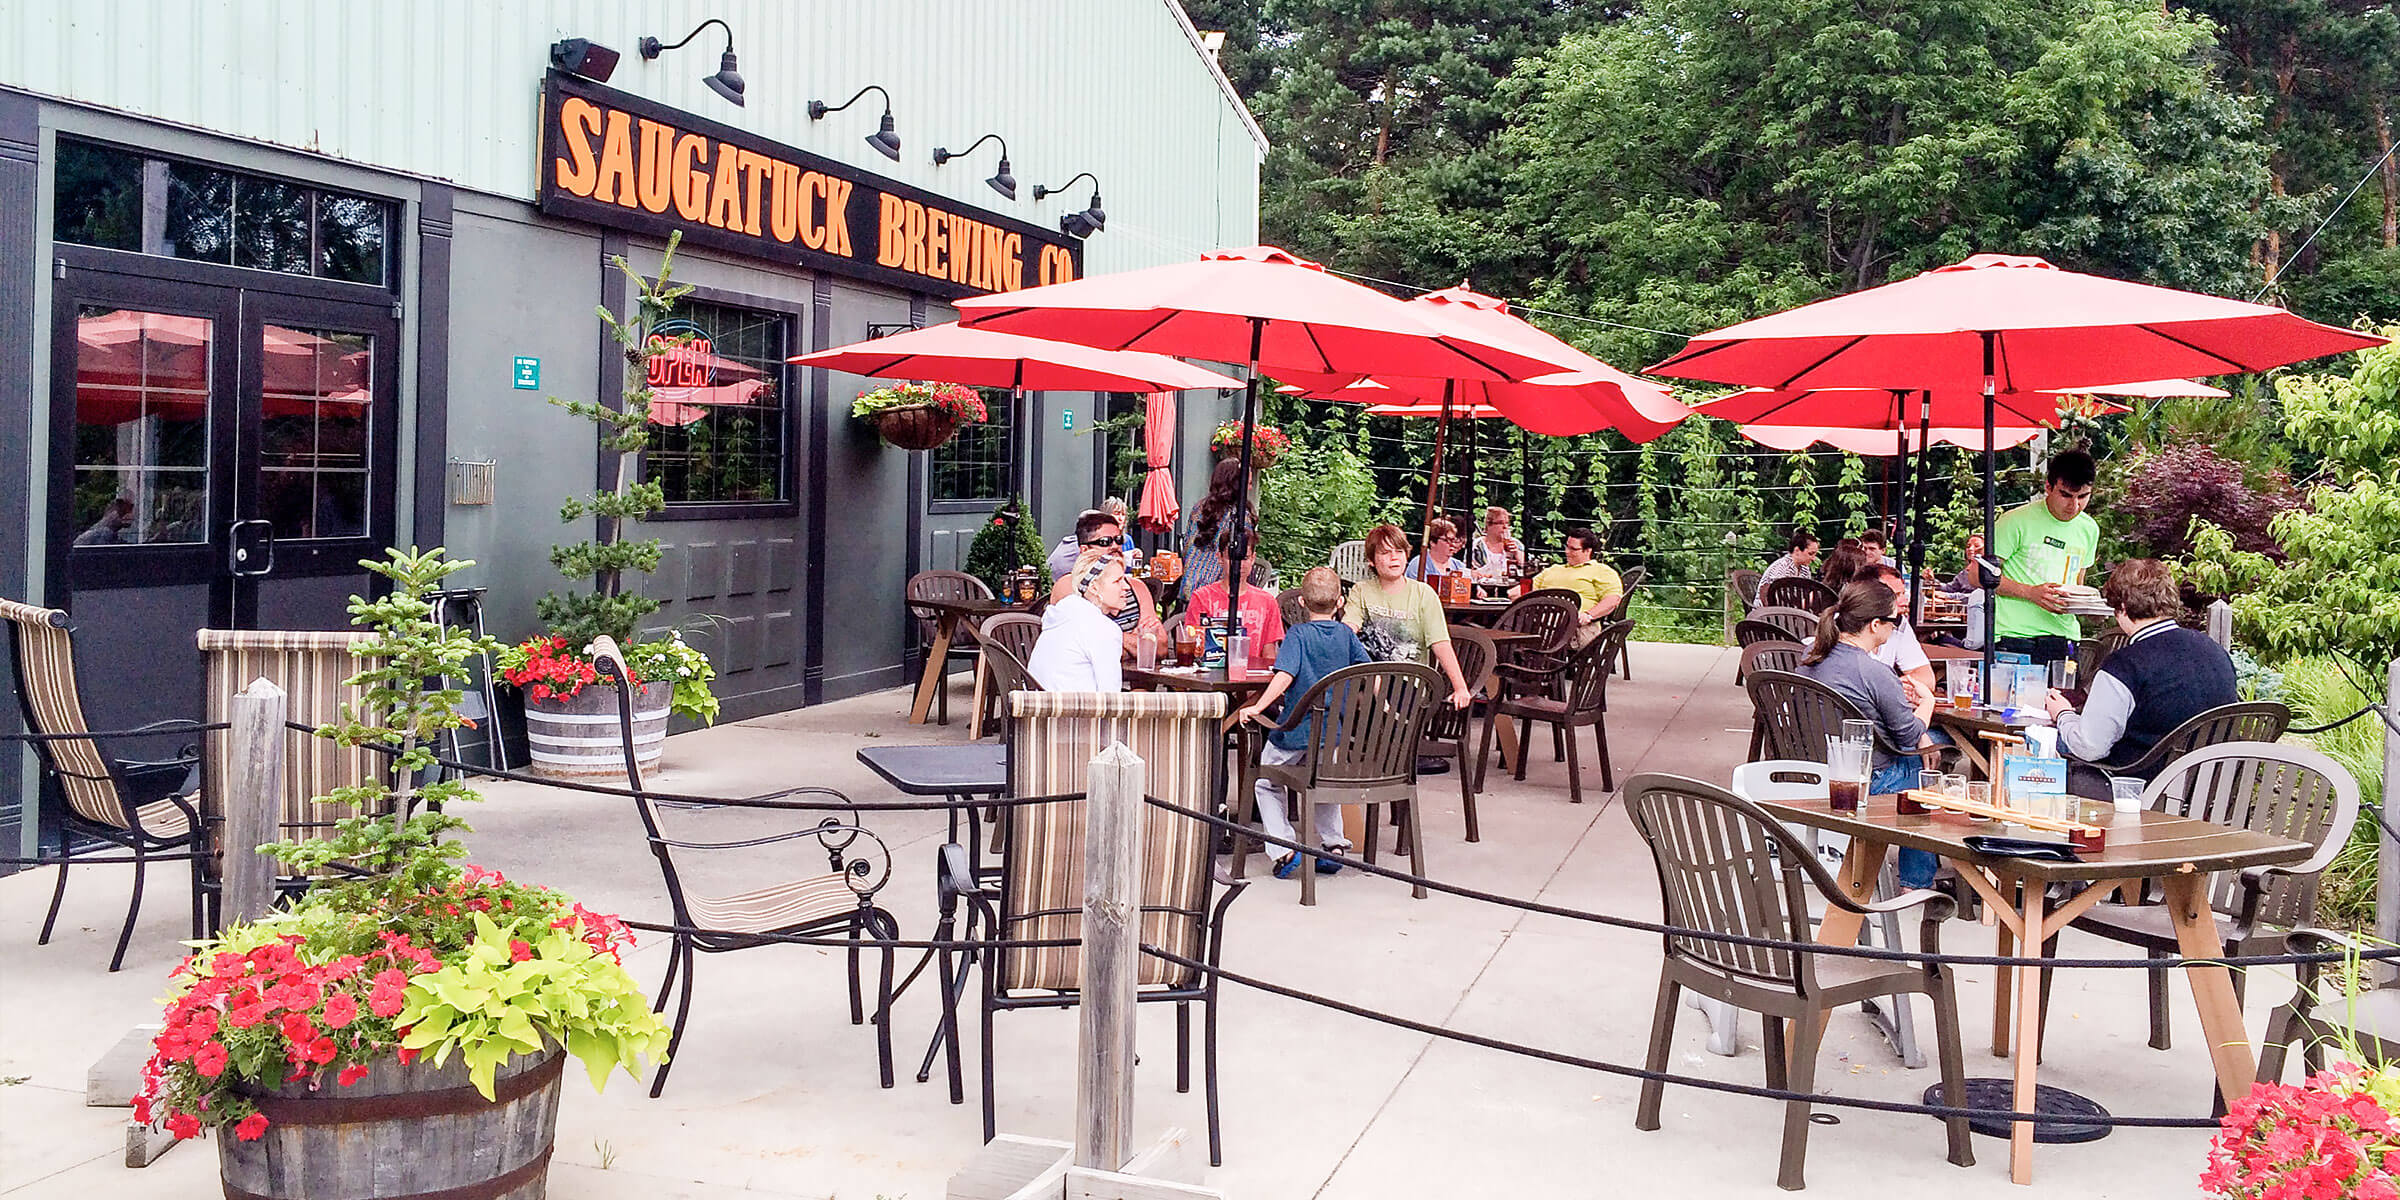 Outside in the patio area of the Saugatuck Brewing Co. location in Douglas, Michigan